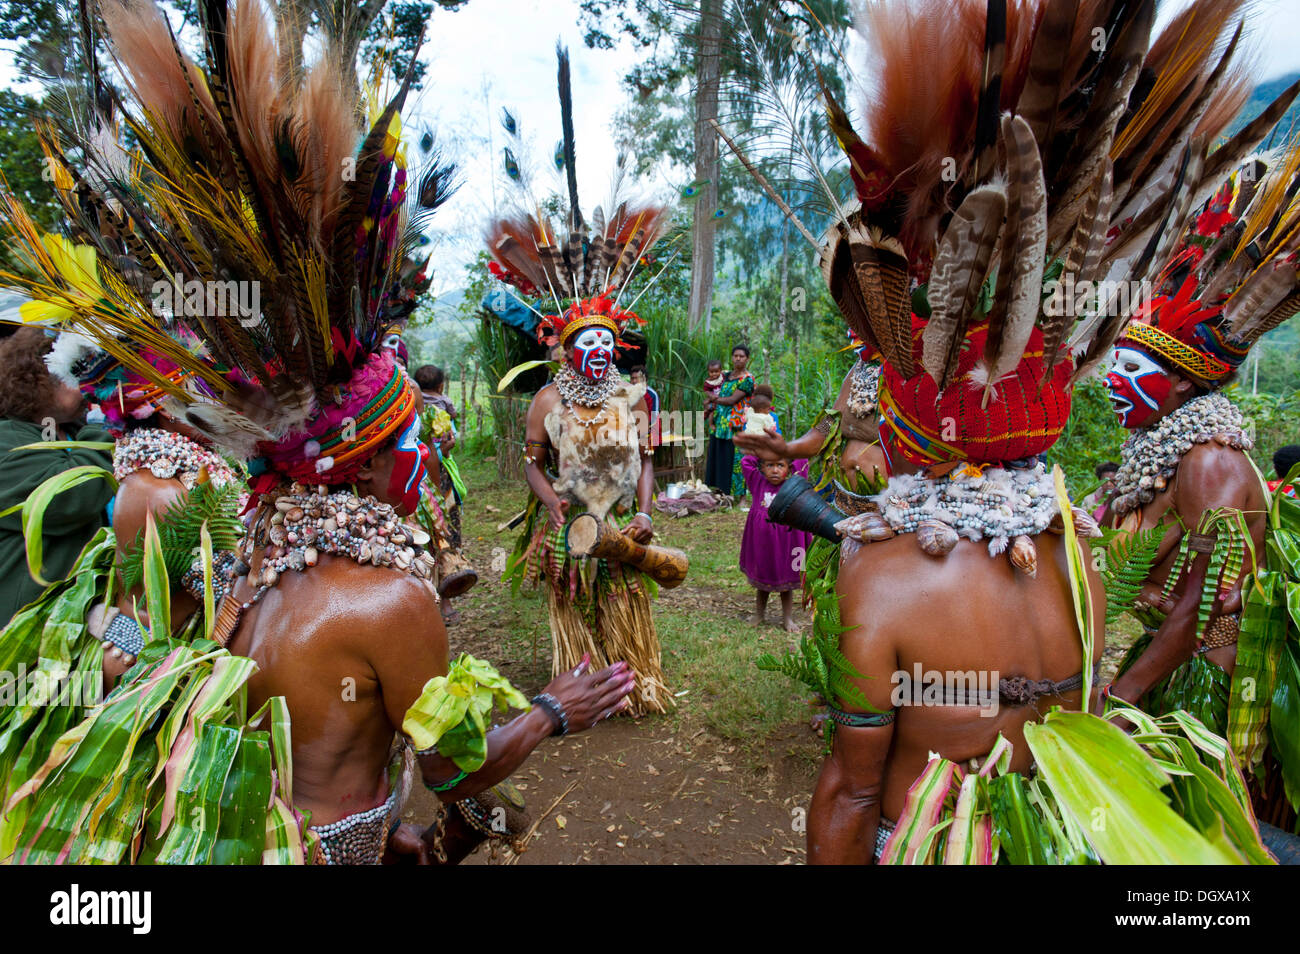 Tribal members in colourful decorations and face paint are celebrating at the traditional Sing Sing gathering in the highlands - Stock Image